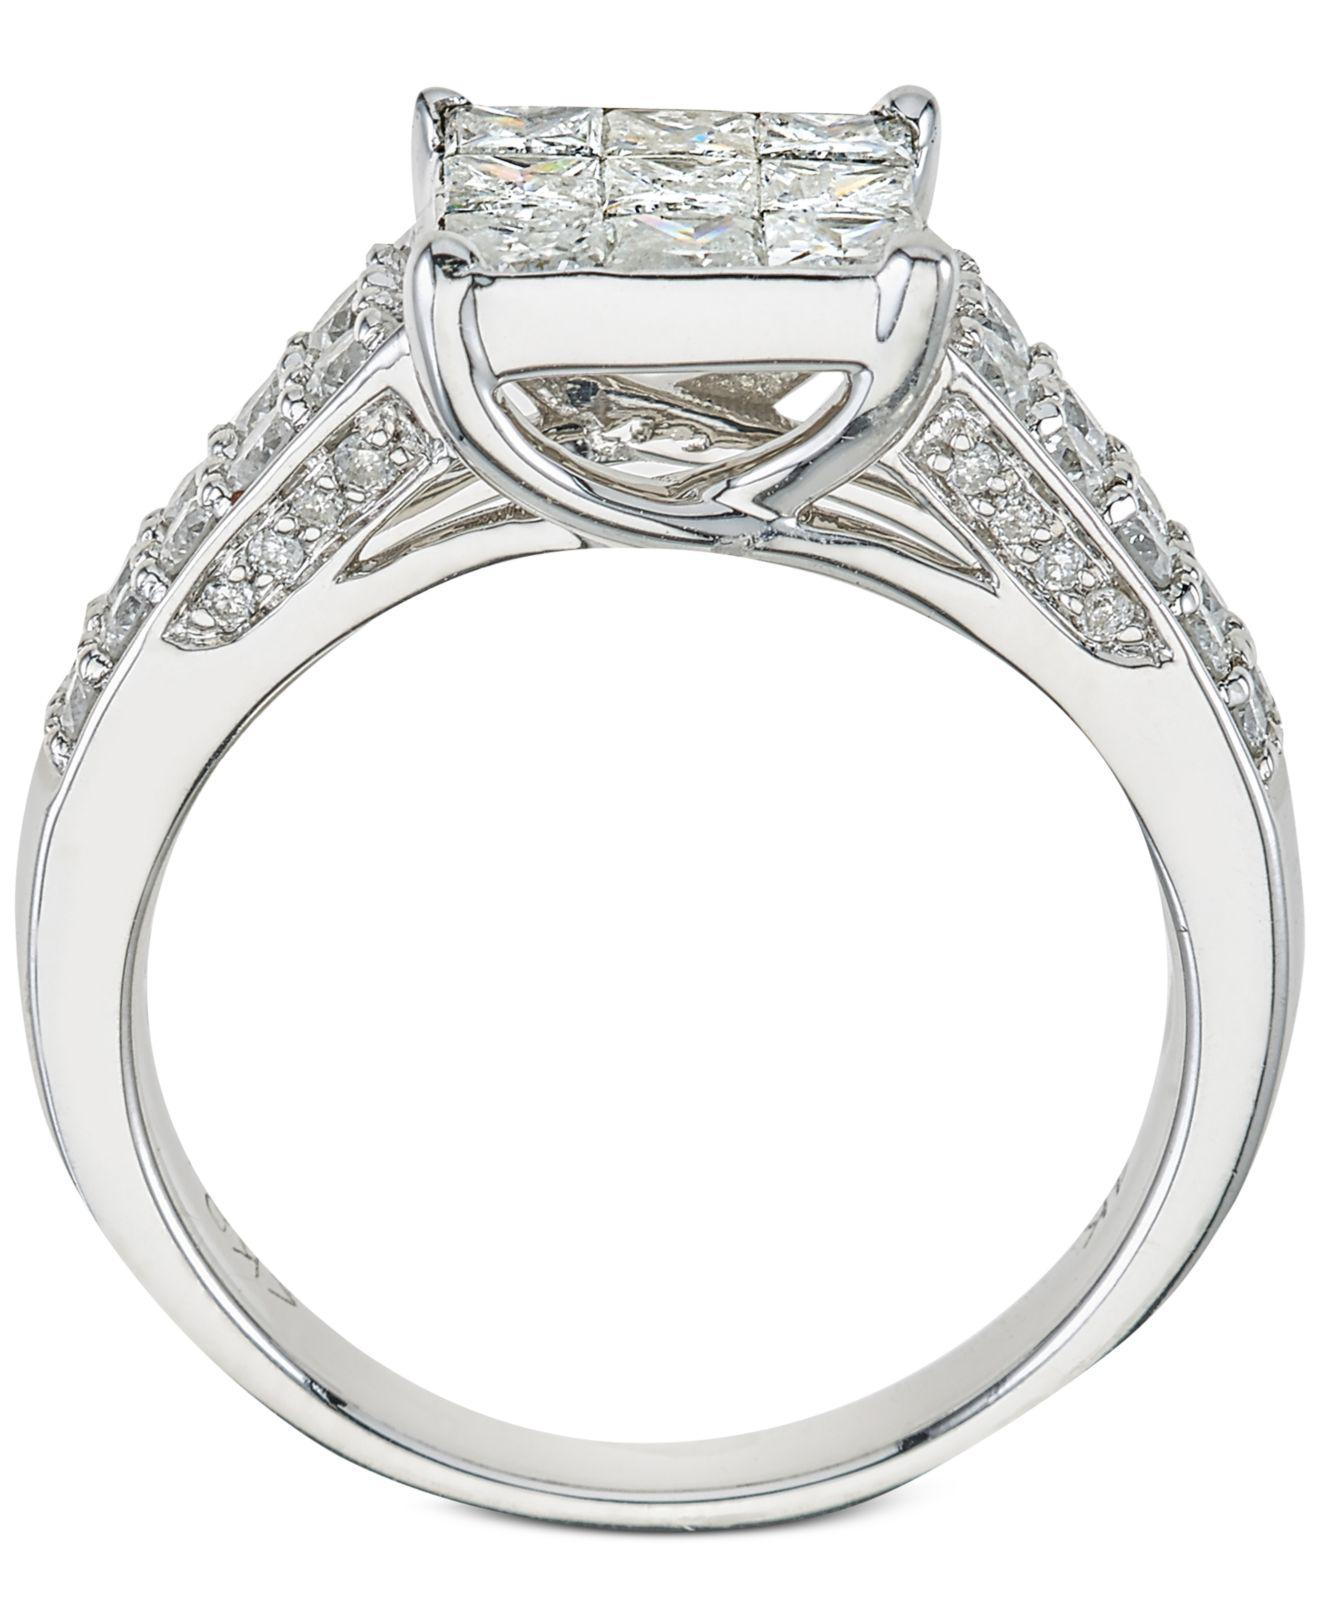 a ring with shank rings inc j products square engagement diamond three stone shaped split